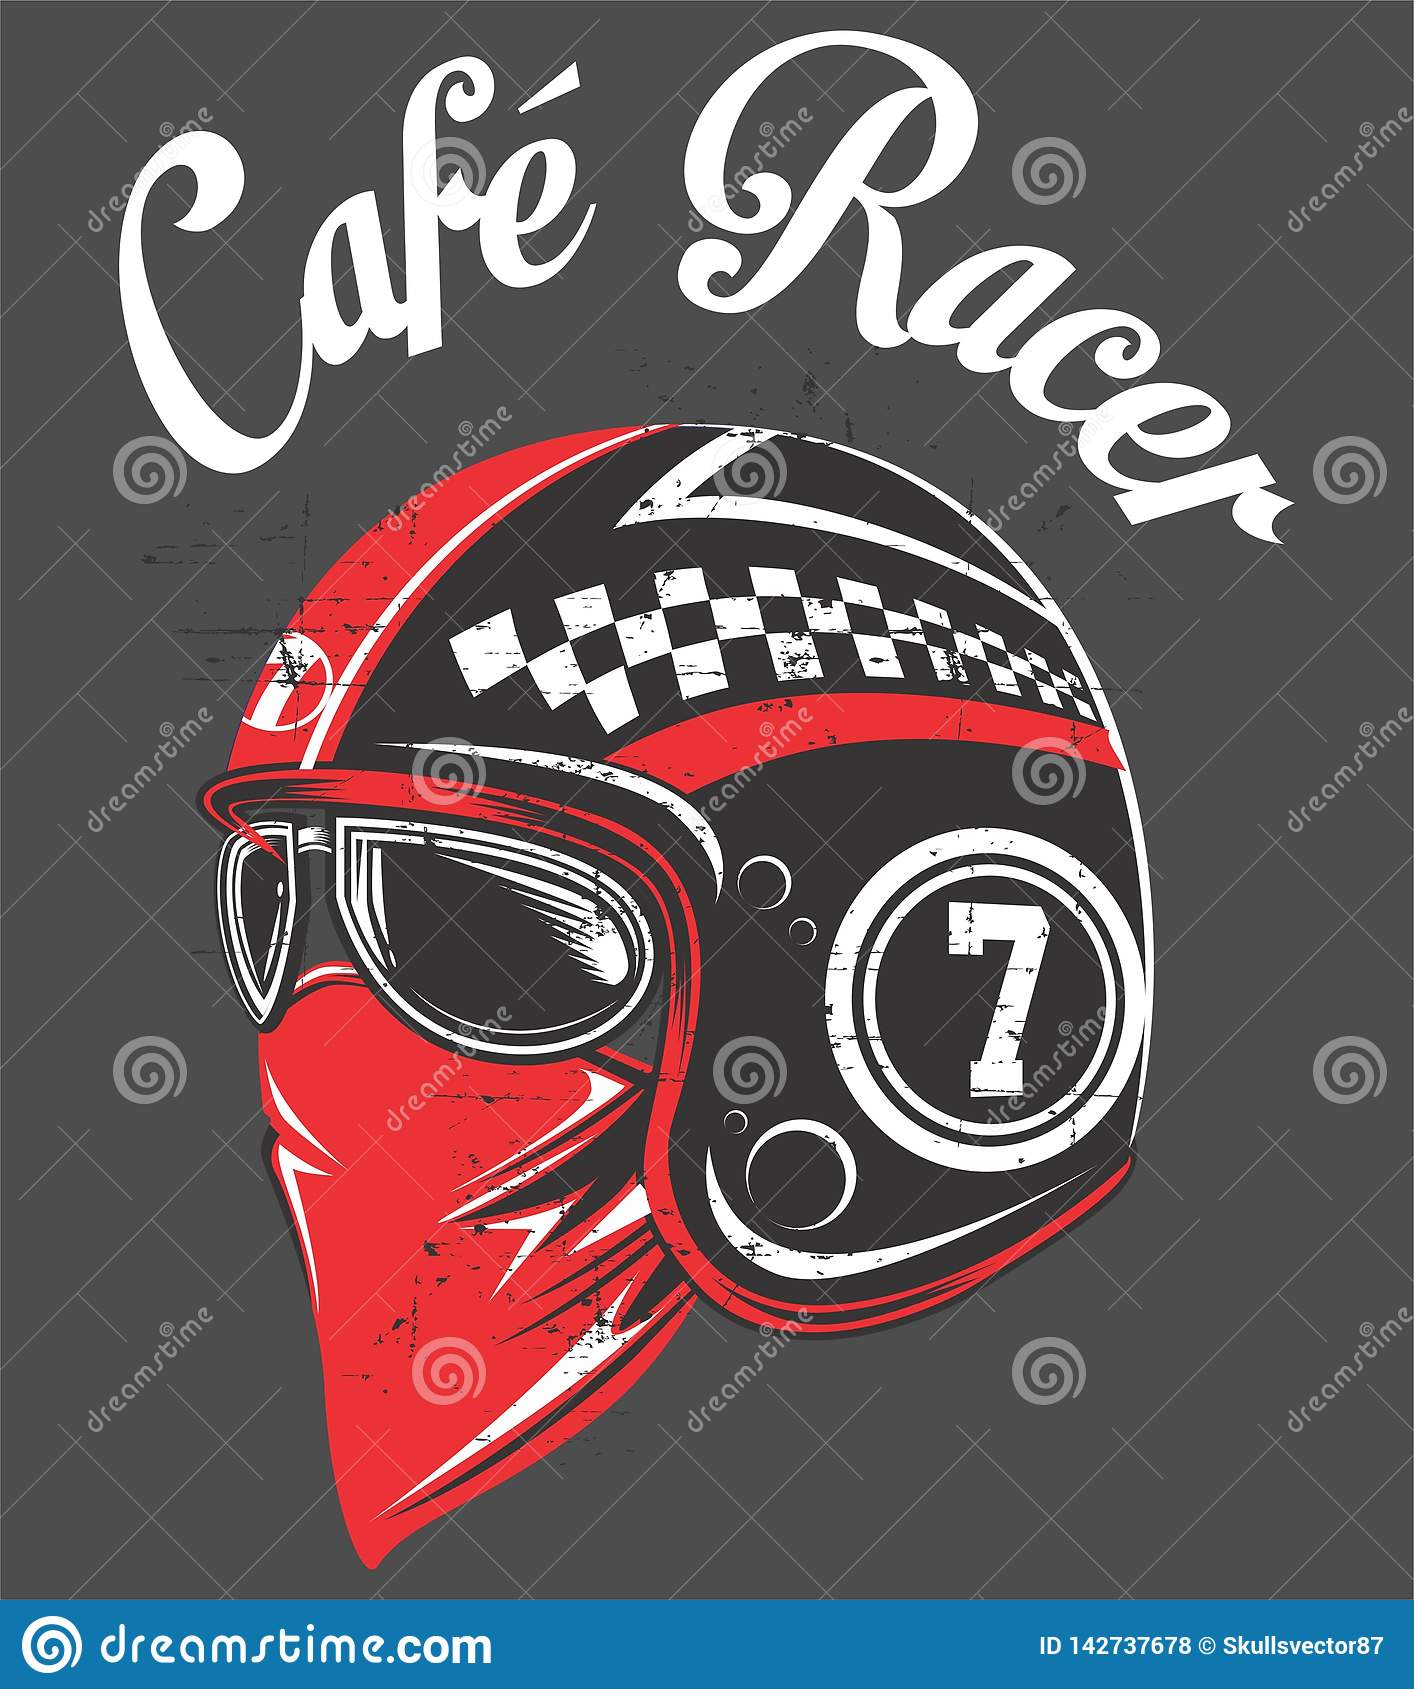 Hand Drawing Of Helmet A Classic Cafe Racer Motorcycle R Illustration Eps Manual Artrwork Hand Draw Stock Vector Illustration Of Hadcore Ilustration 142737678